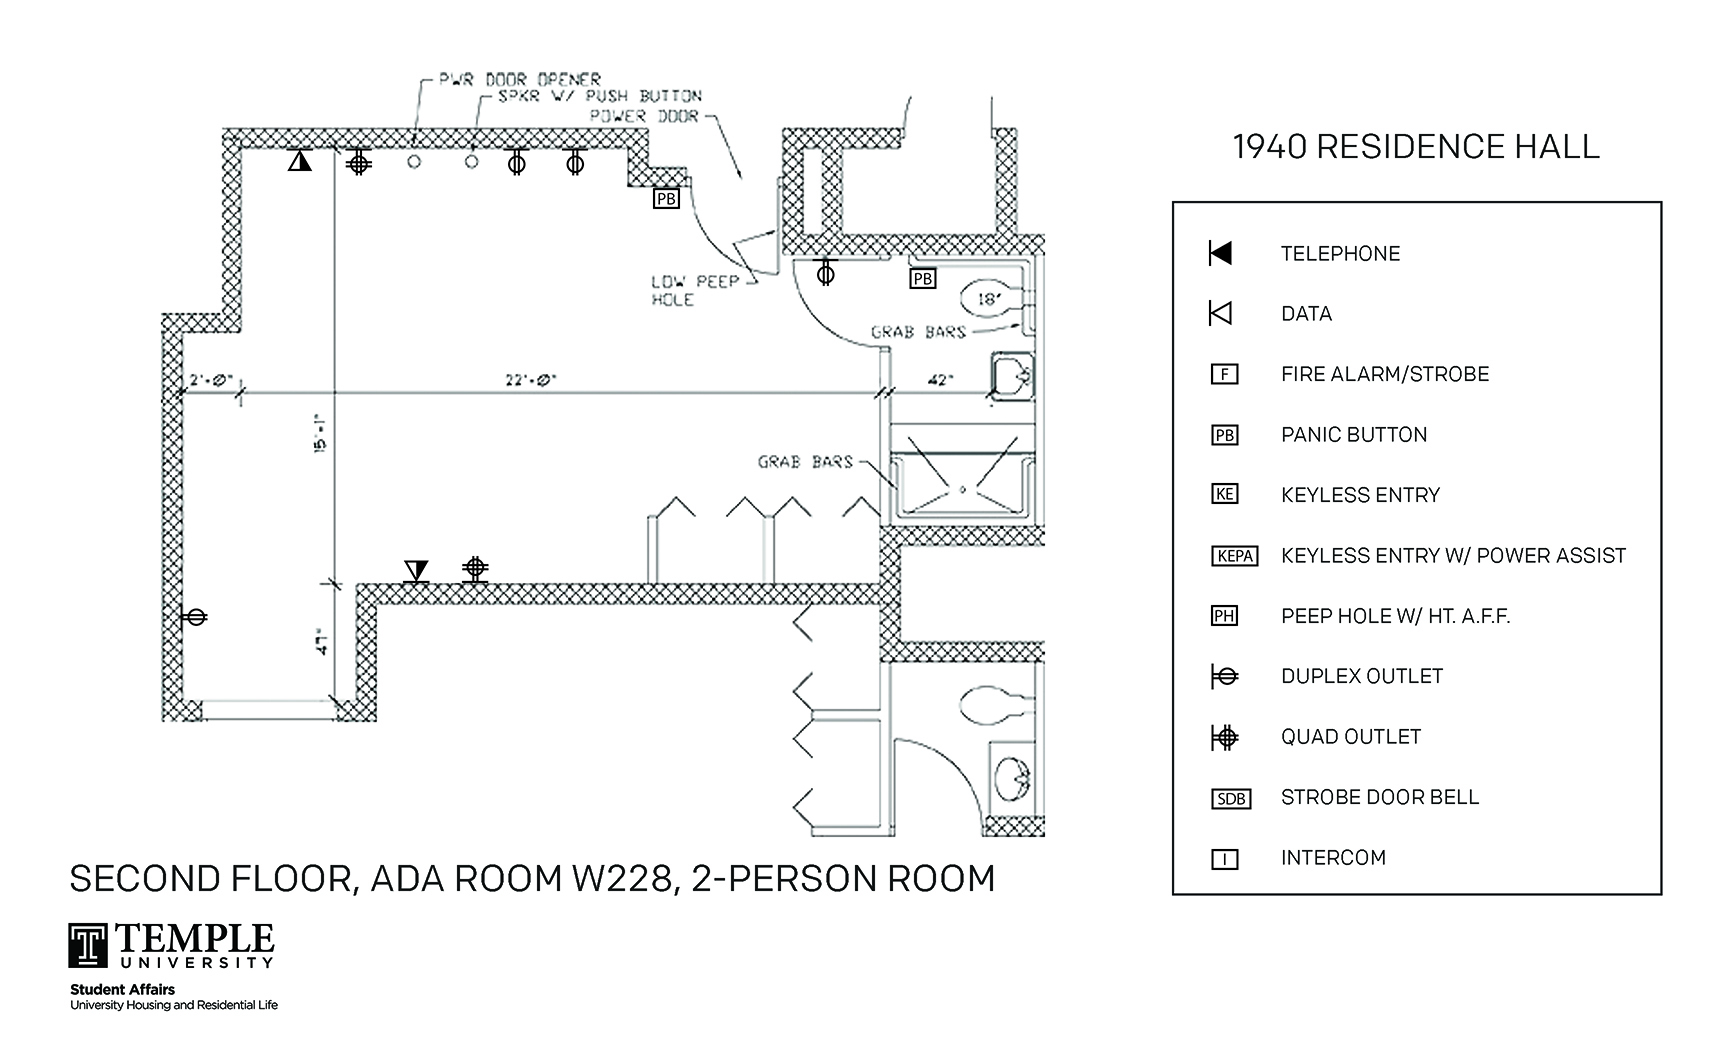 1940 Residence Hall University Housing And Residential Life Home Electrical Wiring Diagrams Accessible Room 2 Person 1 Bedroom Suite W228